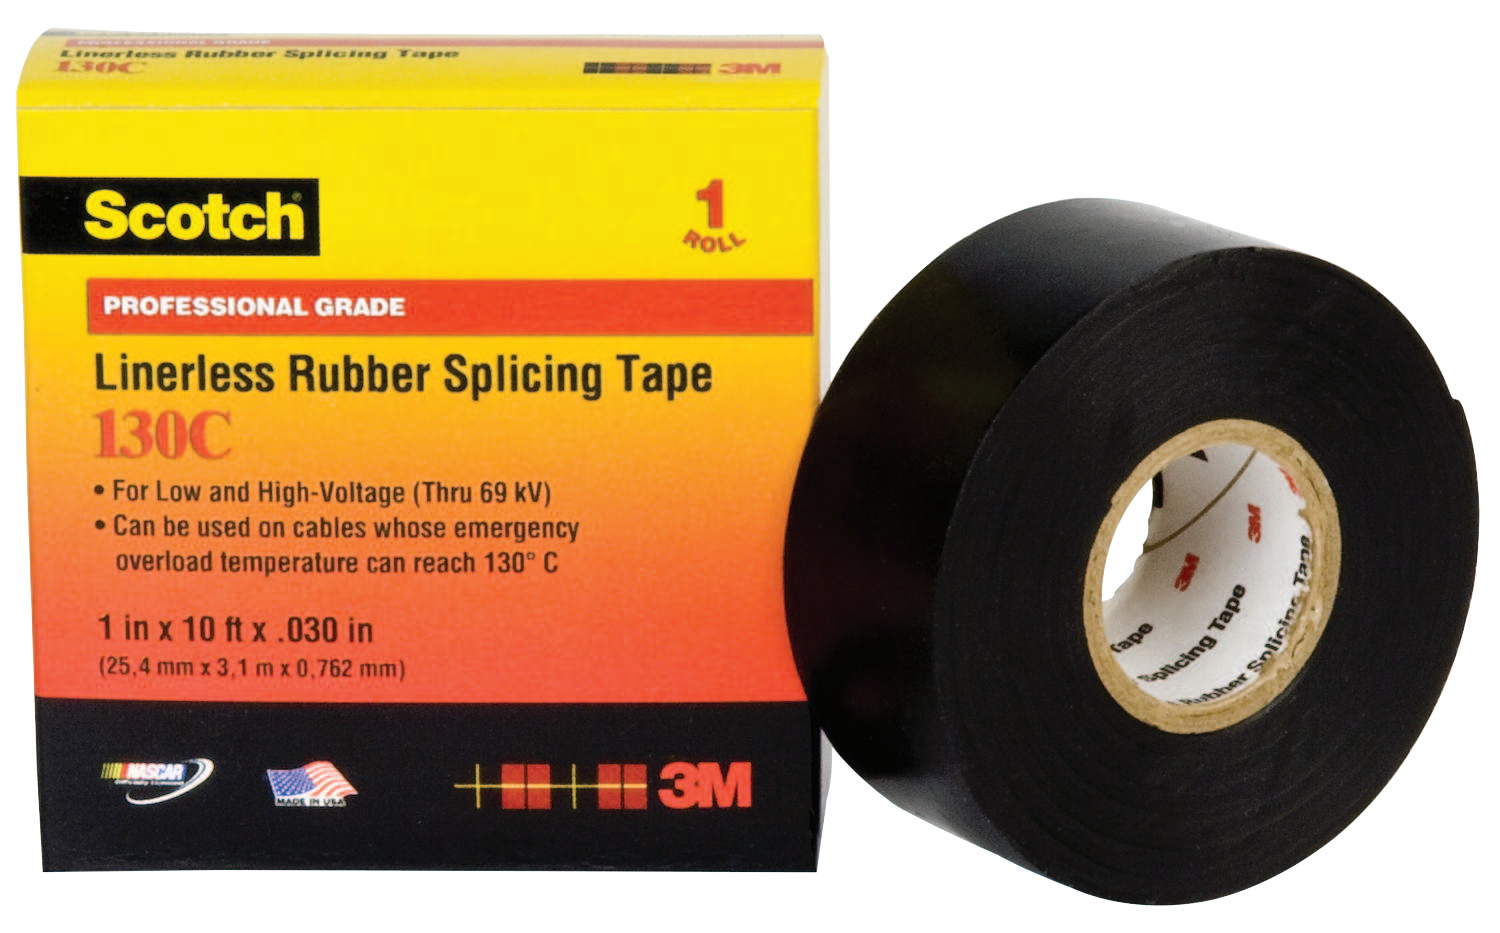 Splicing Tape 3m Electrical Scotch Linerless Splicing Tapes 130c 30 Ft X 2 In Black